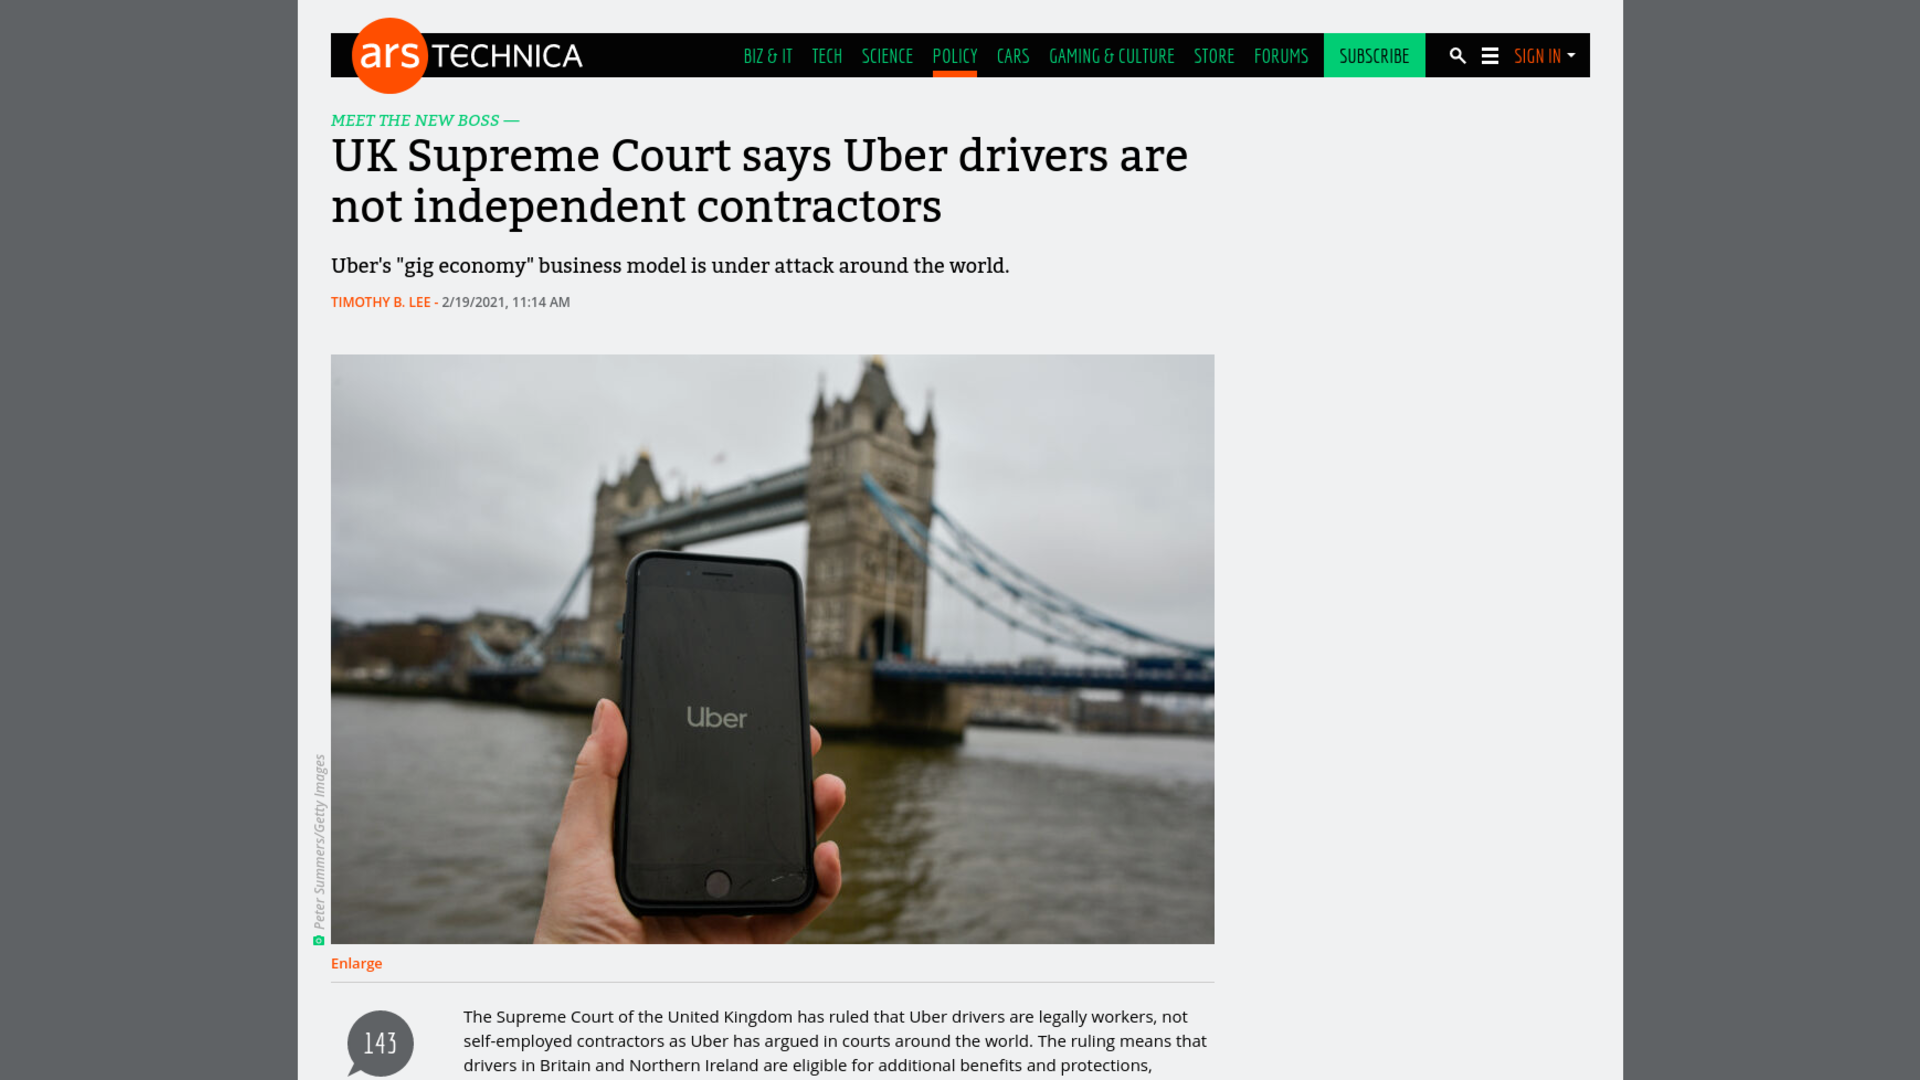 Fairness Rocks News UK Supreme Court says Uber drivers are not independent contractors